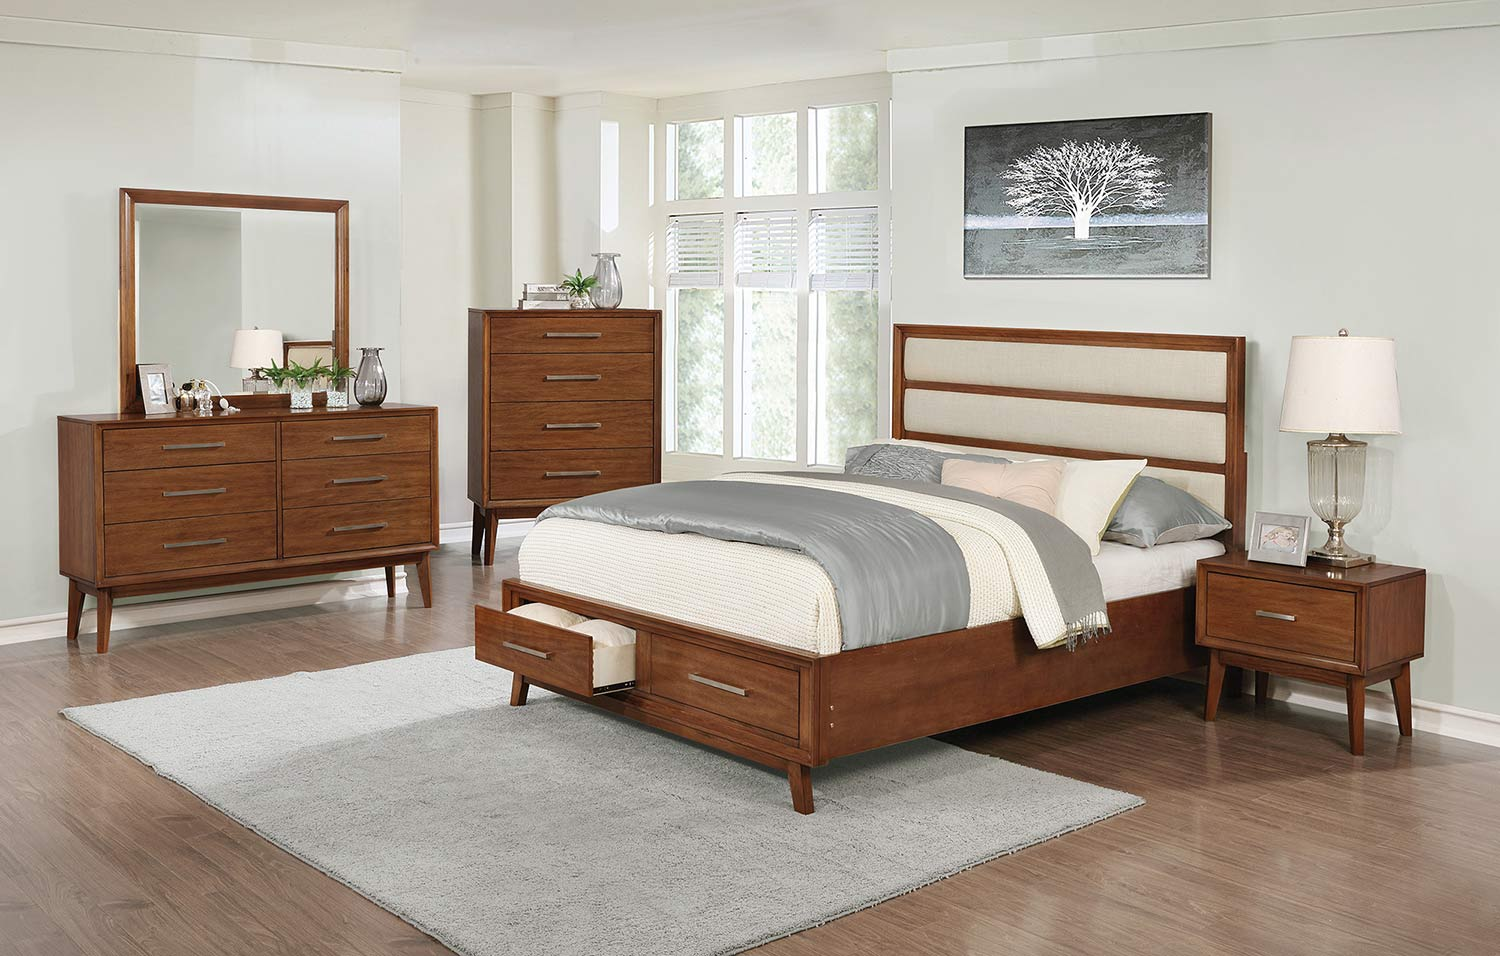 Coaster Banning Bedroom Set - Cream Leatherette